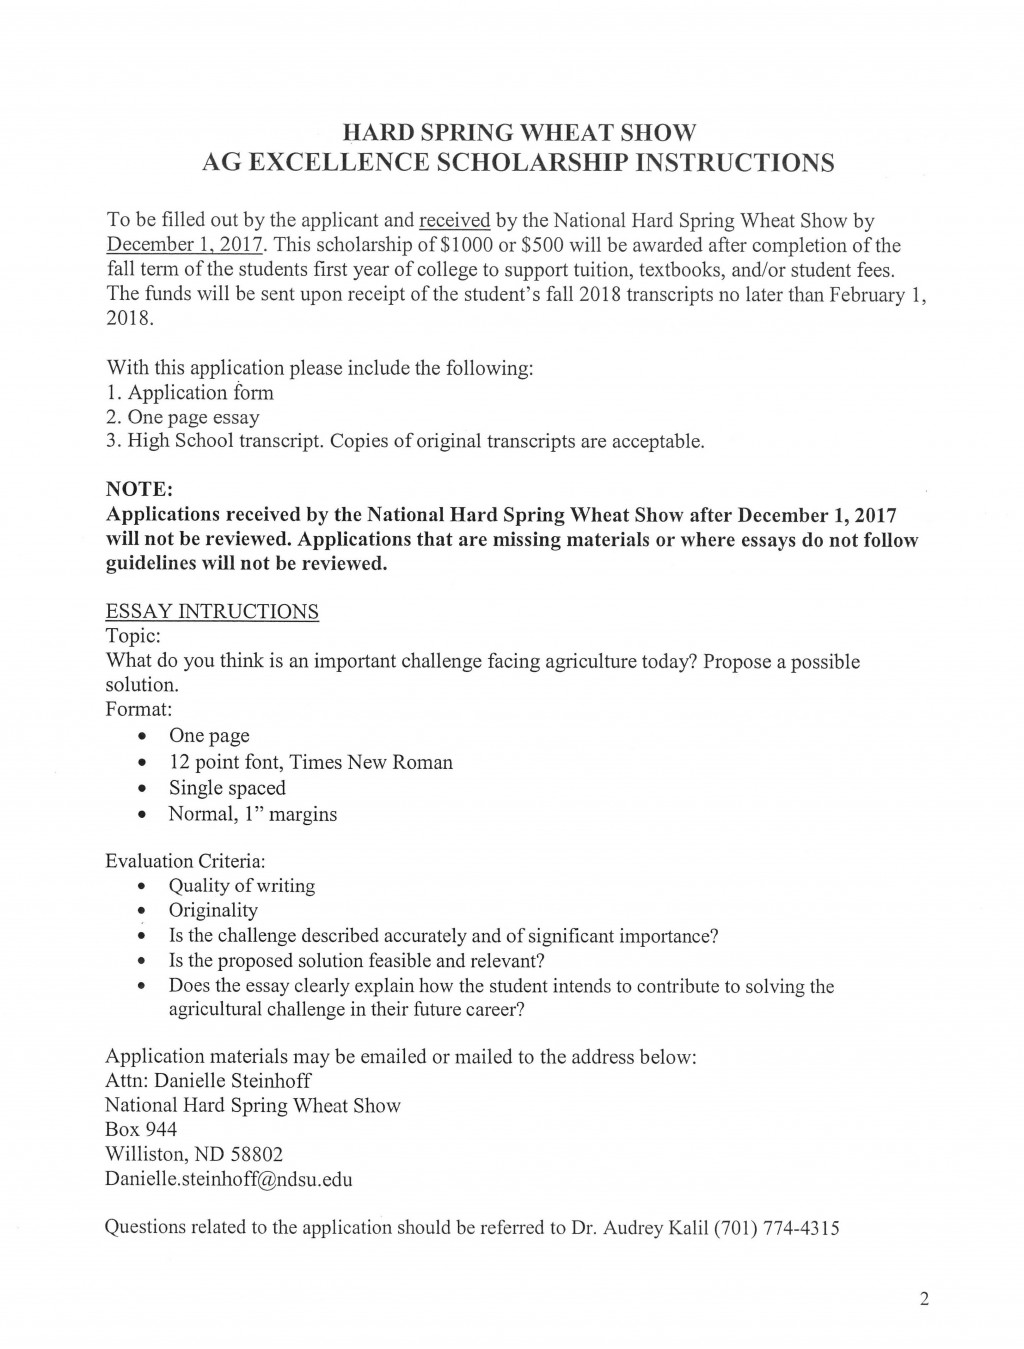 025 Scholarships With Essays Page 2 Essay Singular Without Writing For High School Juniors Class Of 2020 No 2019 Large